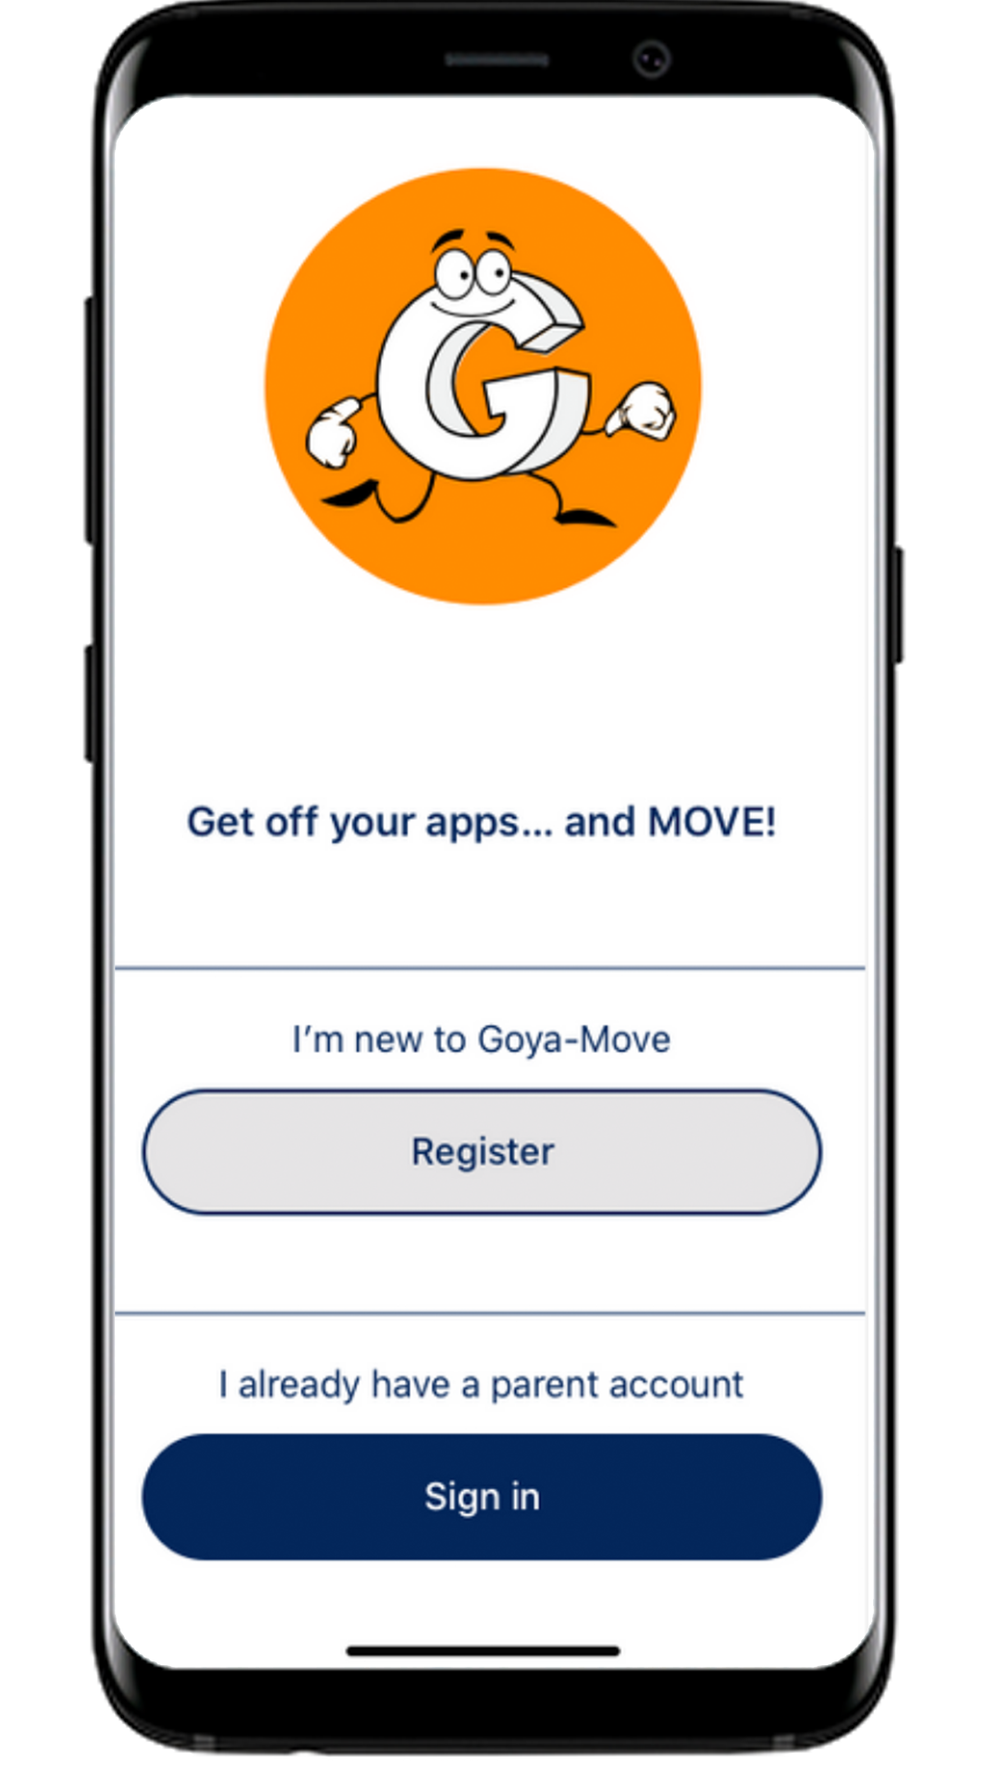 Parental Account - Goya-Move uses the latest remote device linking technology so that the parents phone can manage the child's phone.